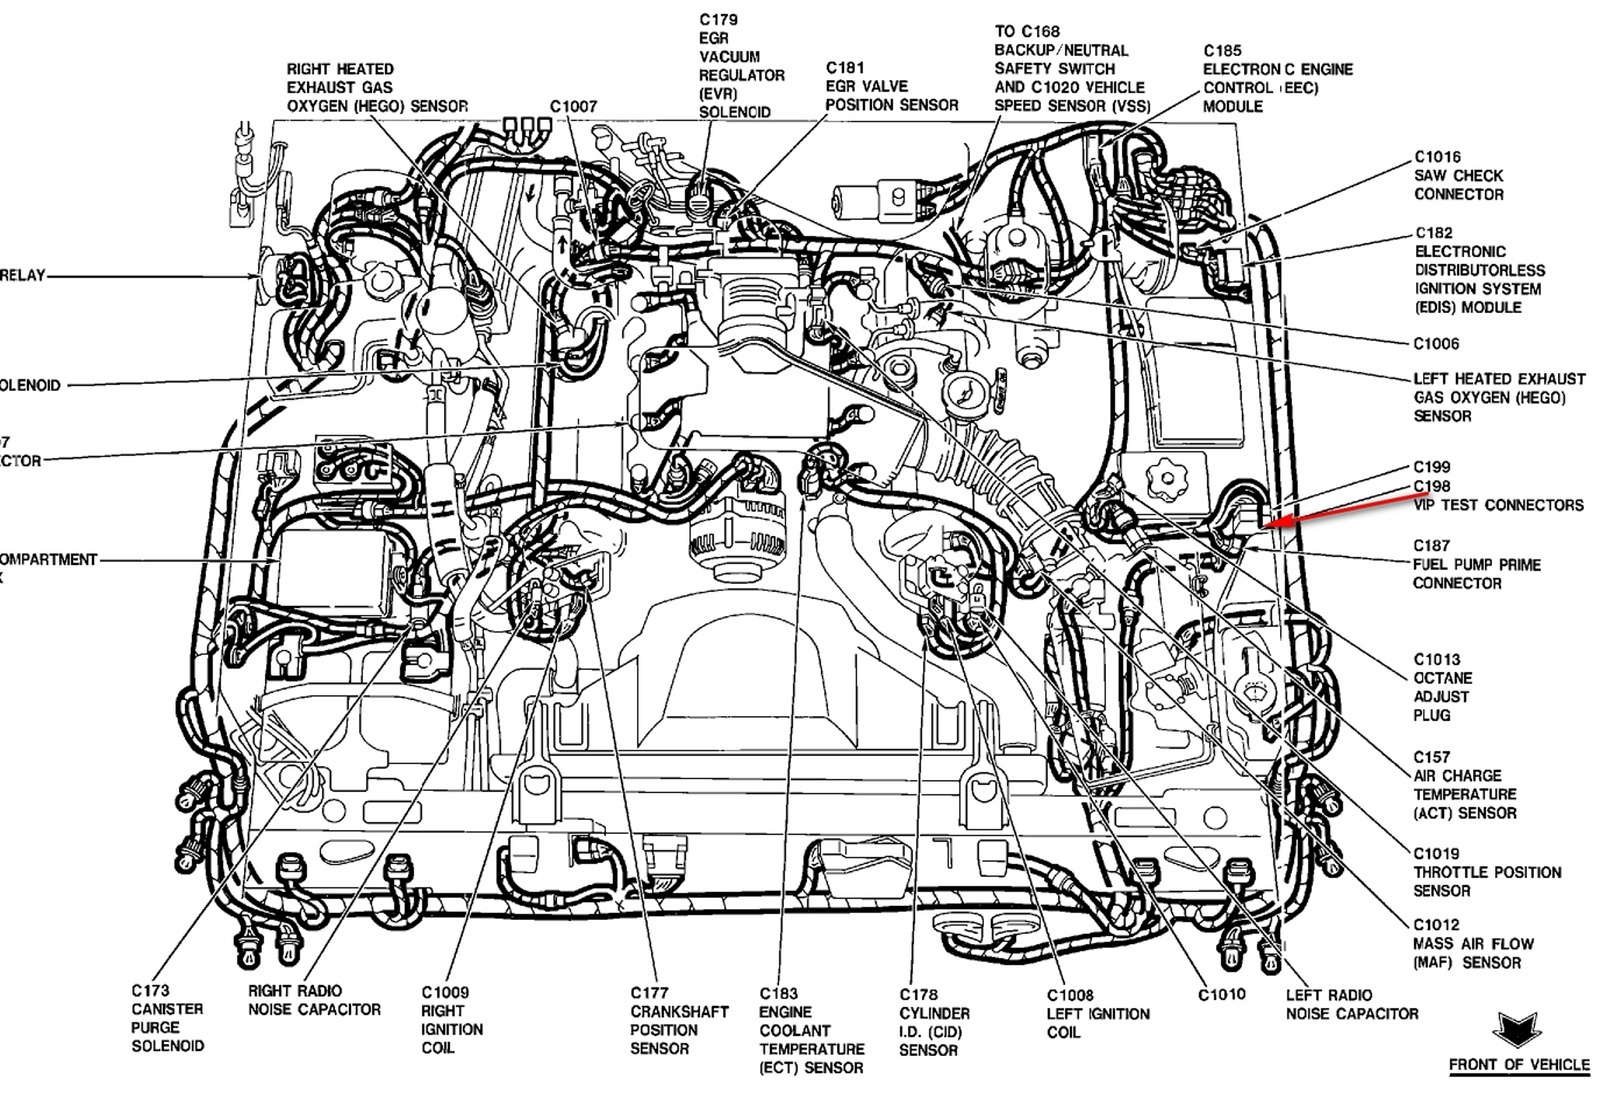 1996 Cadillac Concours Engine Diagram Not Lossing Wiring 1994 Deville Ford Crown Victoria Third Level Rh 11 1 16 Jacobwinterstein Com